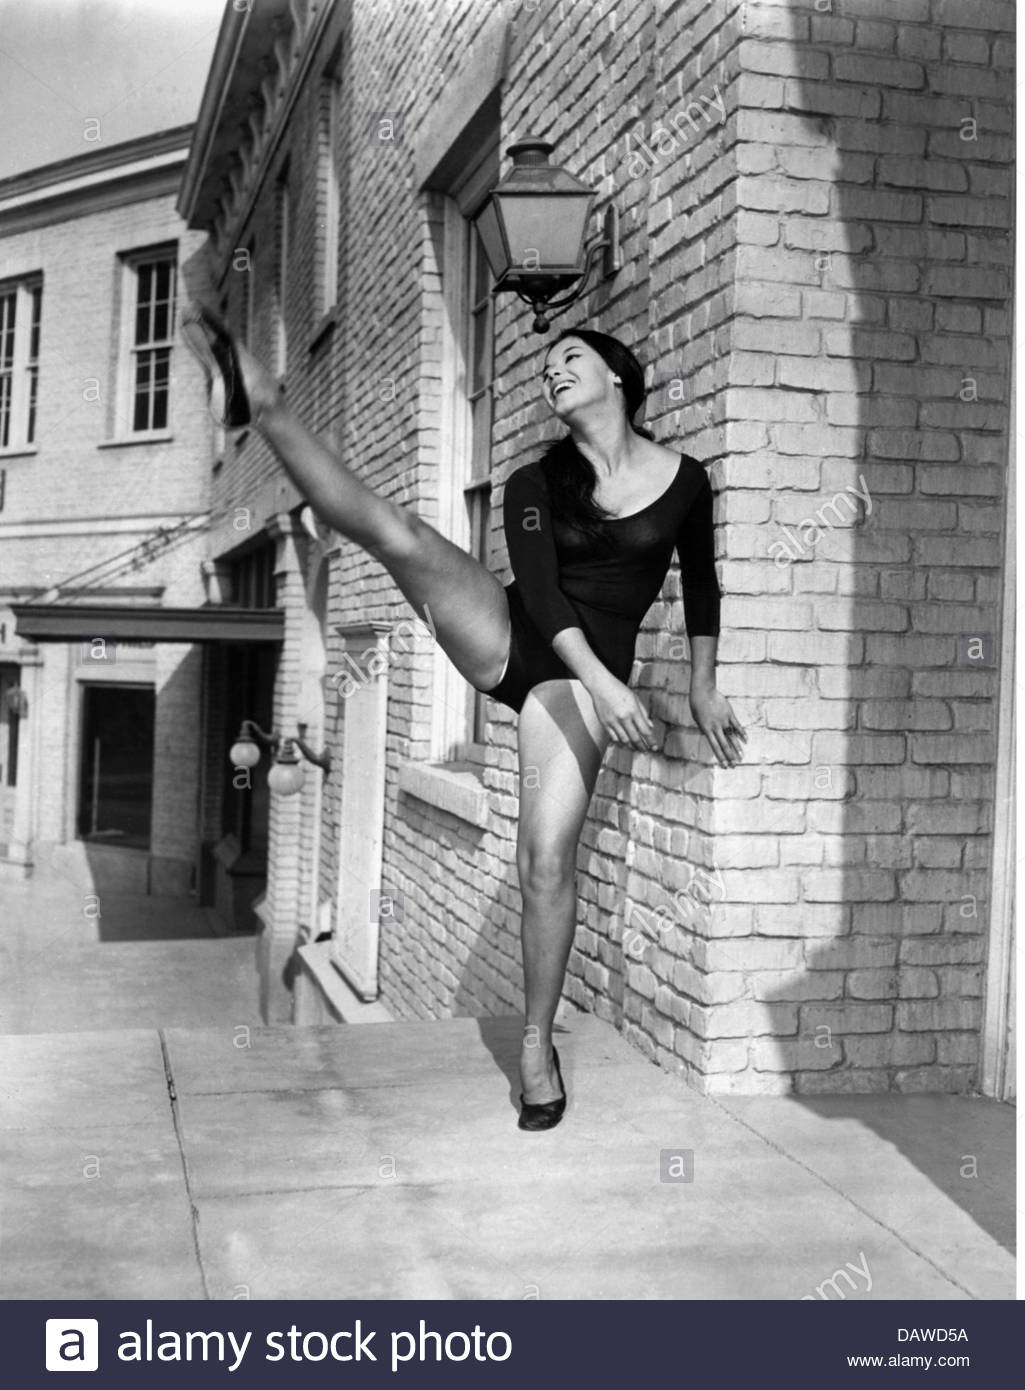 Nuyen, France, * 31.7.1939, French actress, full length, dancing, circa 1960, Additional-Rights-Clearances-NA - Stock Image